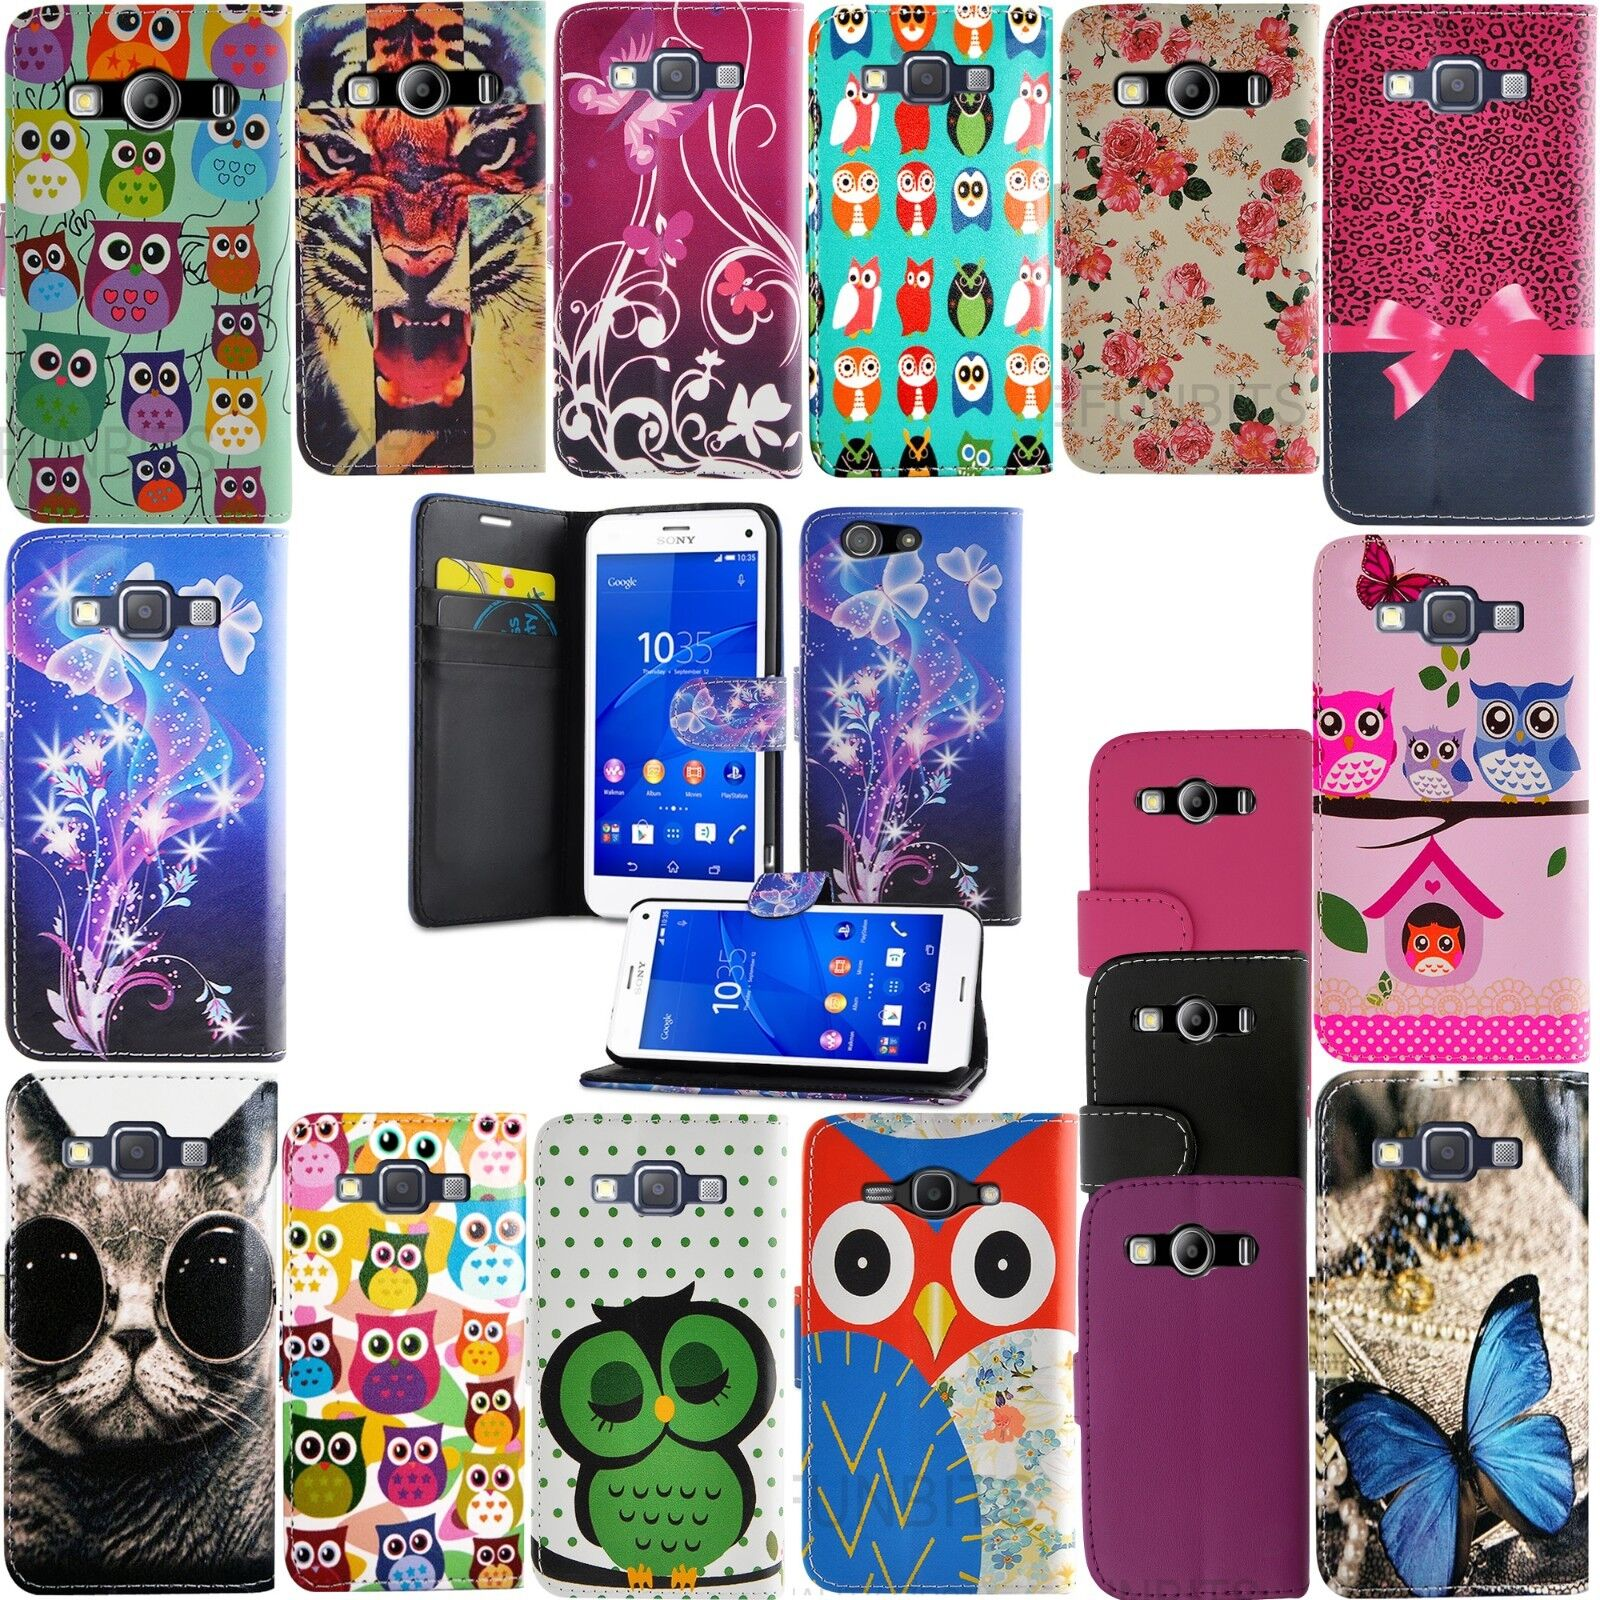 FOR SONY XPERIA E MORE WALLET BOOK FLIP PU LEATHER PROTECTION PHONE CASE COVER